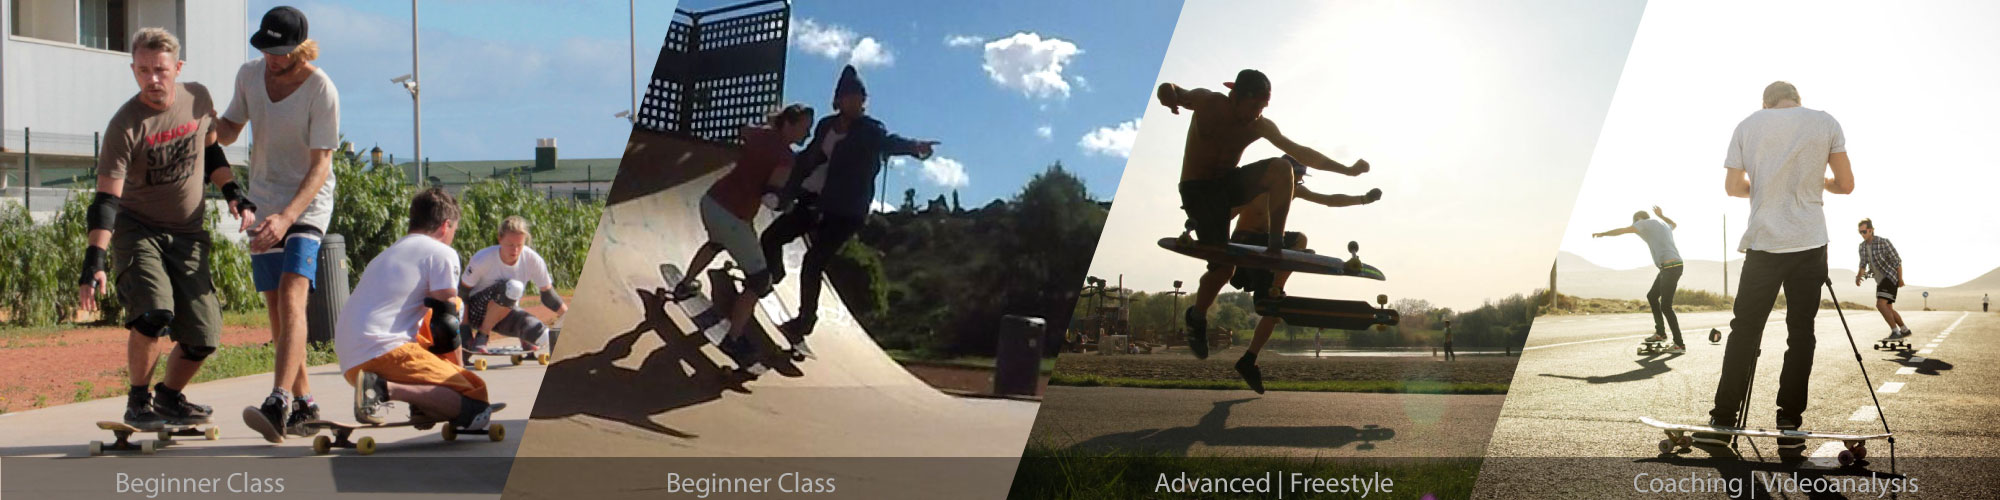 Overview of the Longboard-Masterclass skate lessons for Beginner and advanced and the personal coachings.